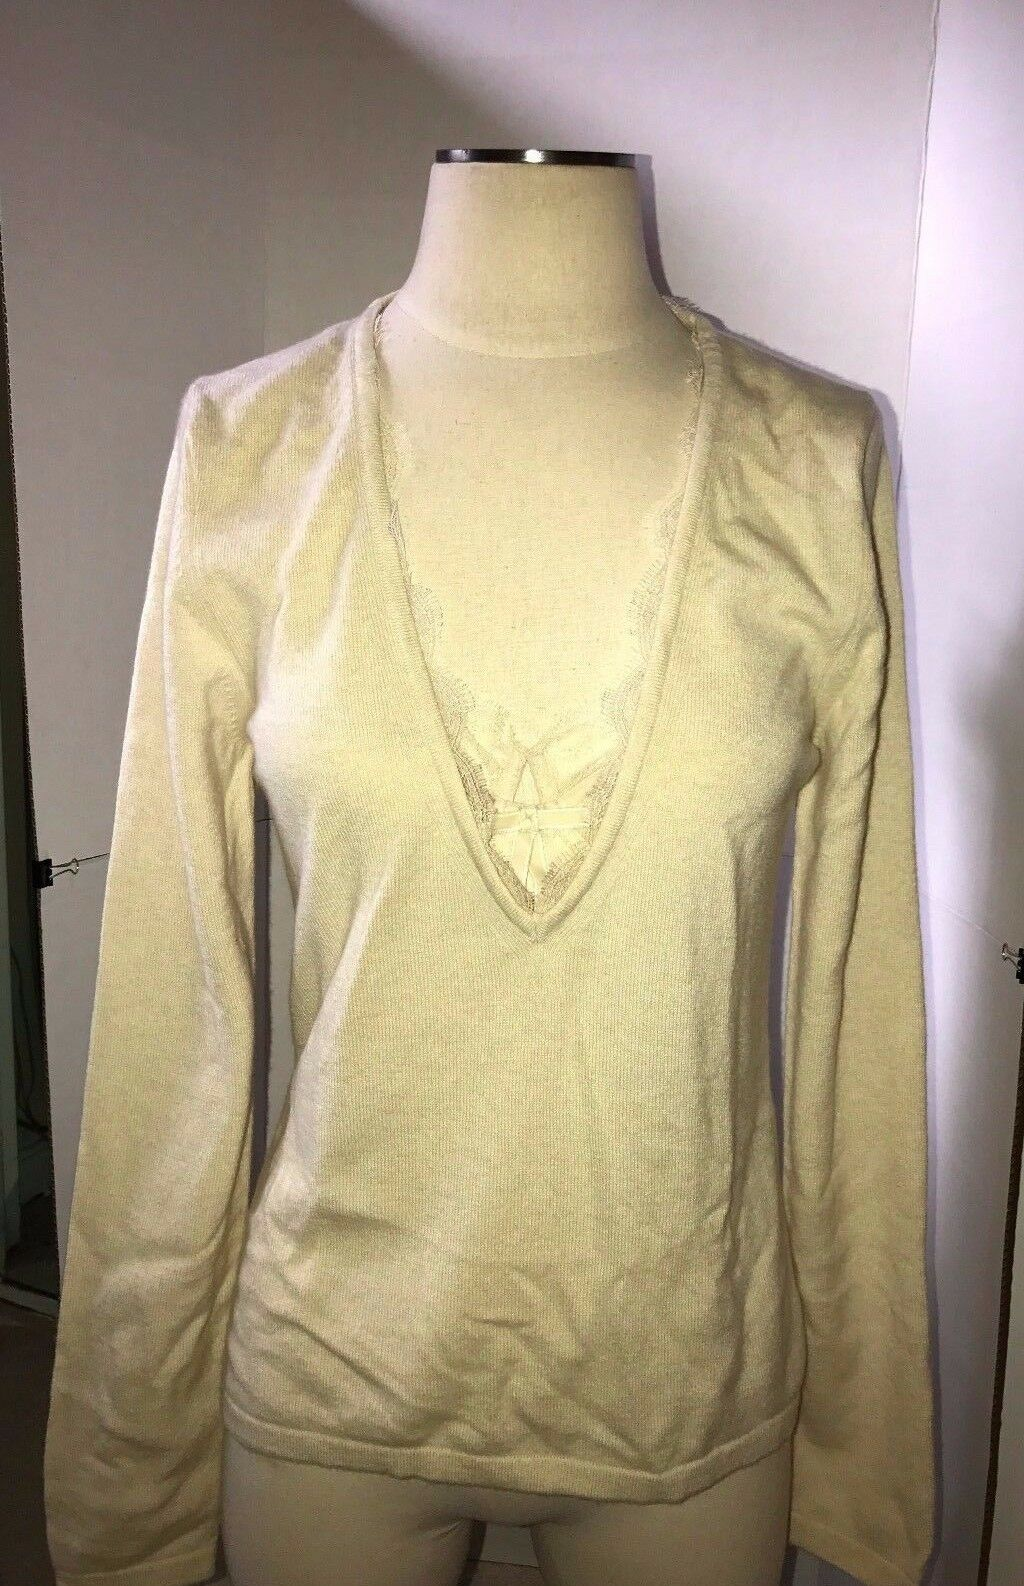 Wolford Cashmere V - Neck Top Long Sleeve Größe  Large Farbe  Cream  59178 - 70